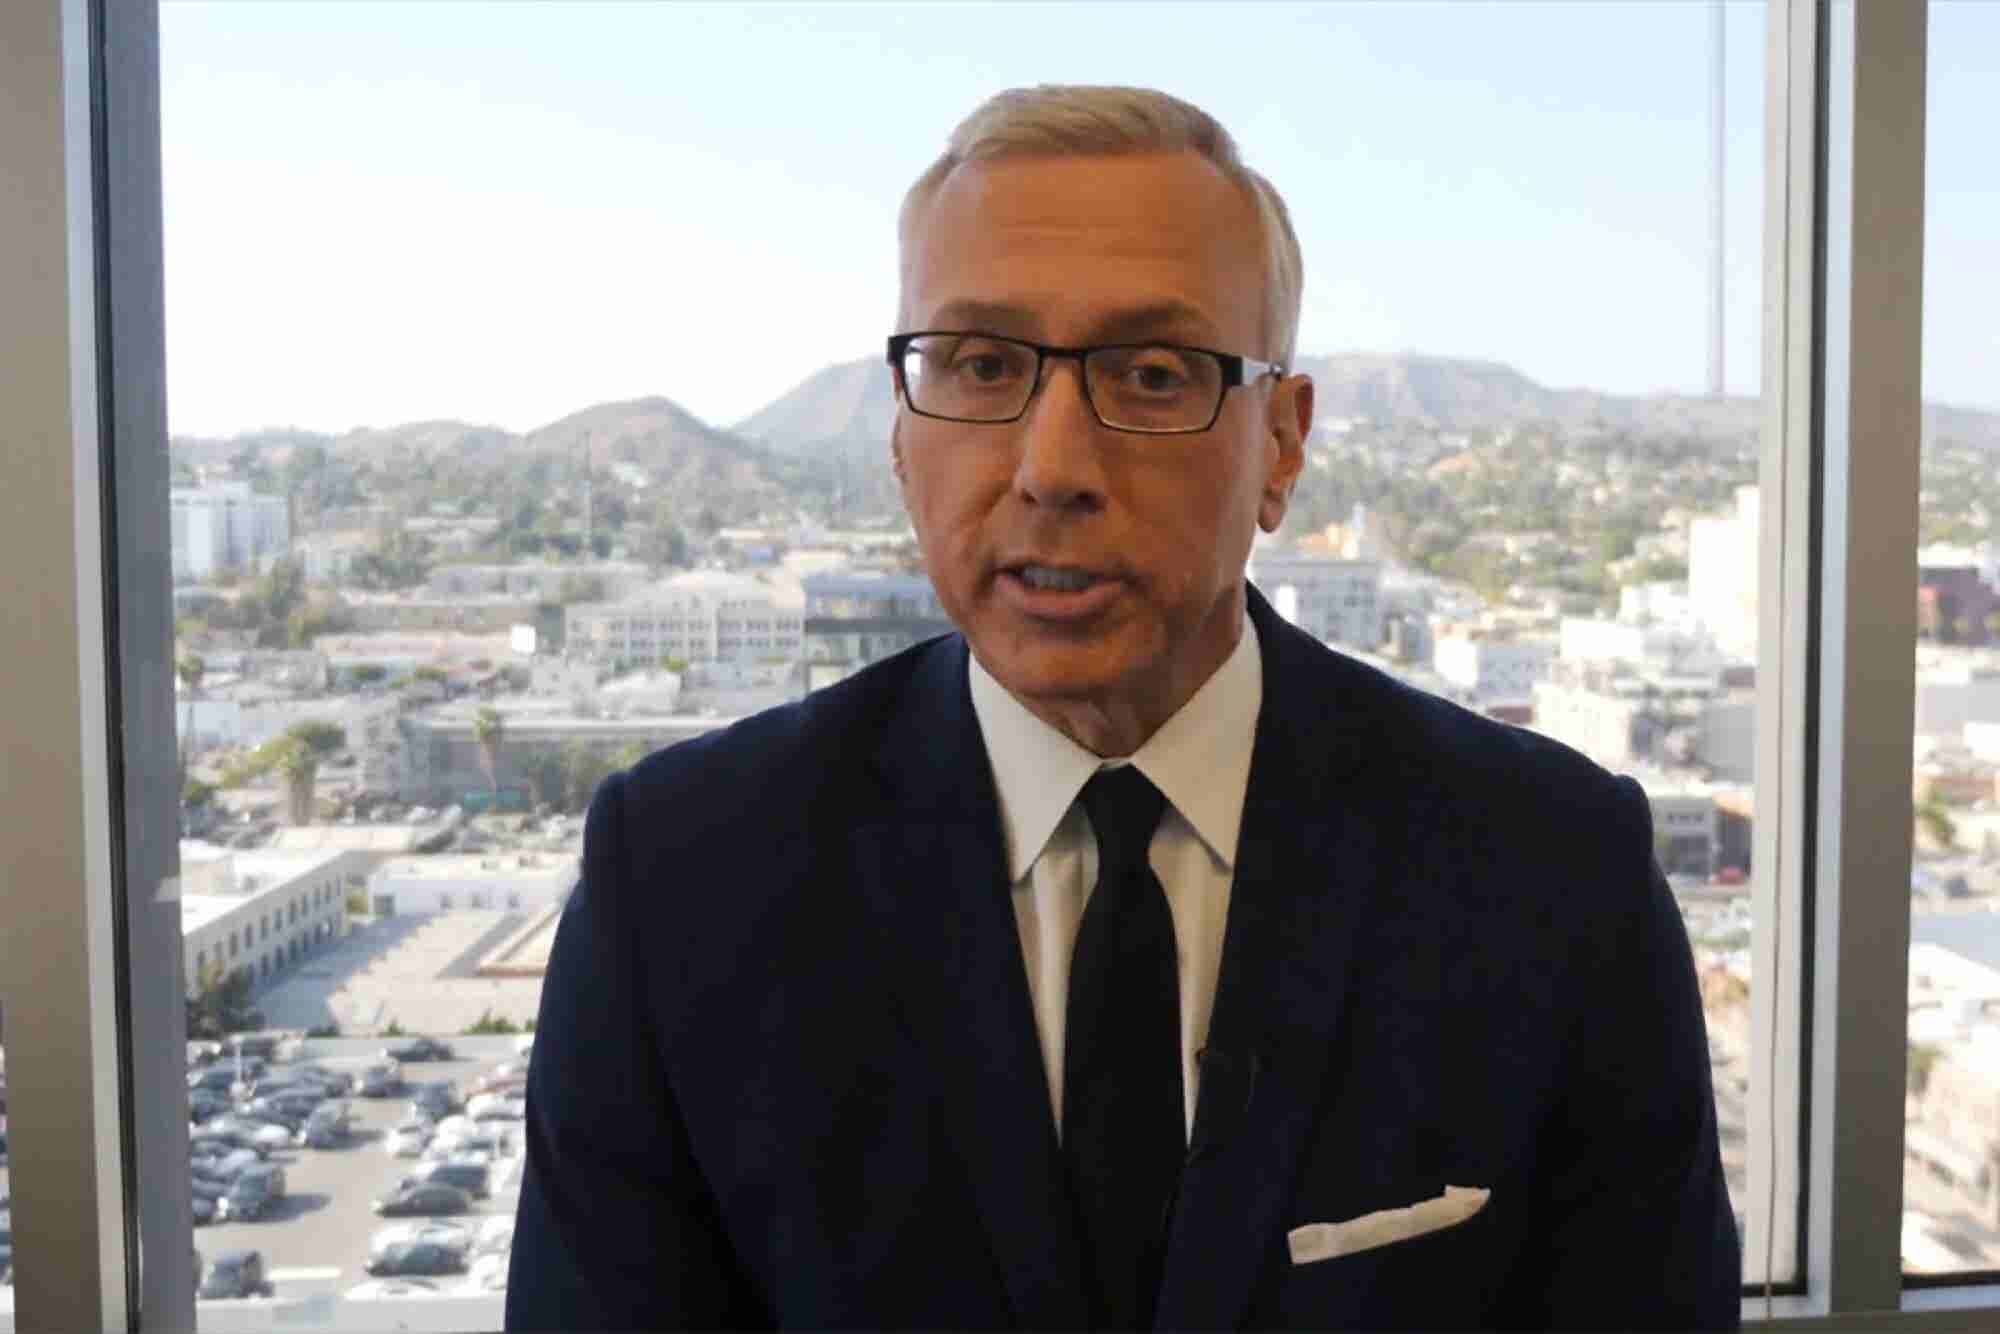 How Dr. Drew Conquered the Media Without Compromising His Integrity